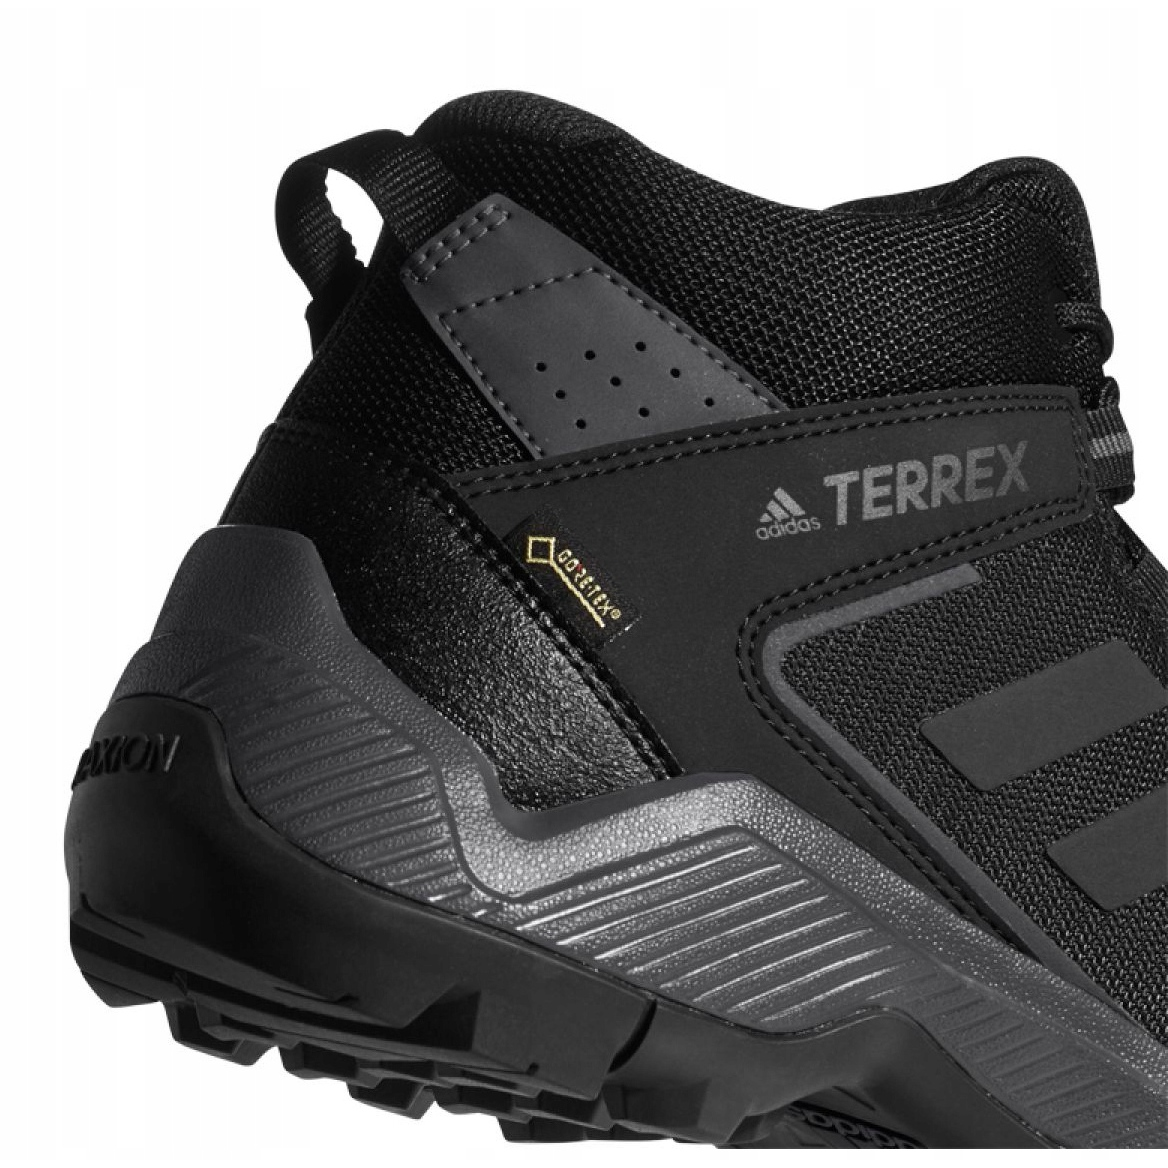 half off online here fast delivery Details about Black Adidas Terrex Eastrail Mid Gtx M F36760 shoes